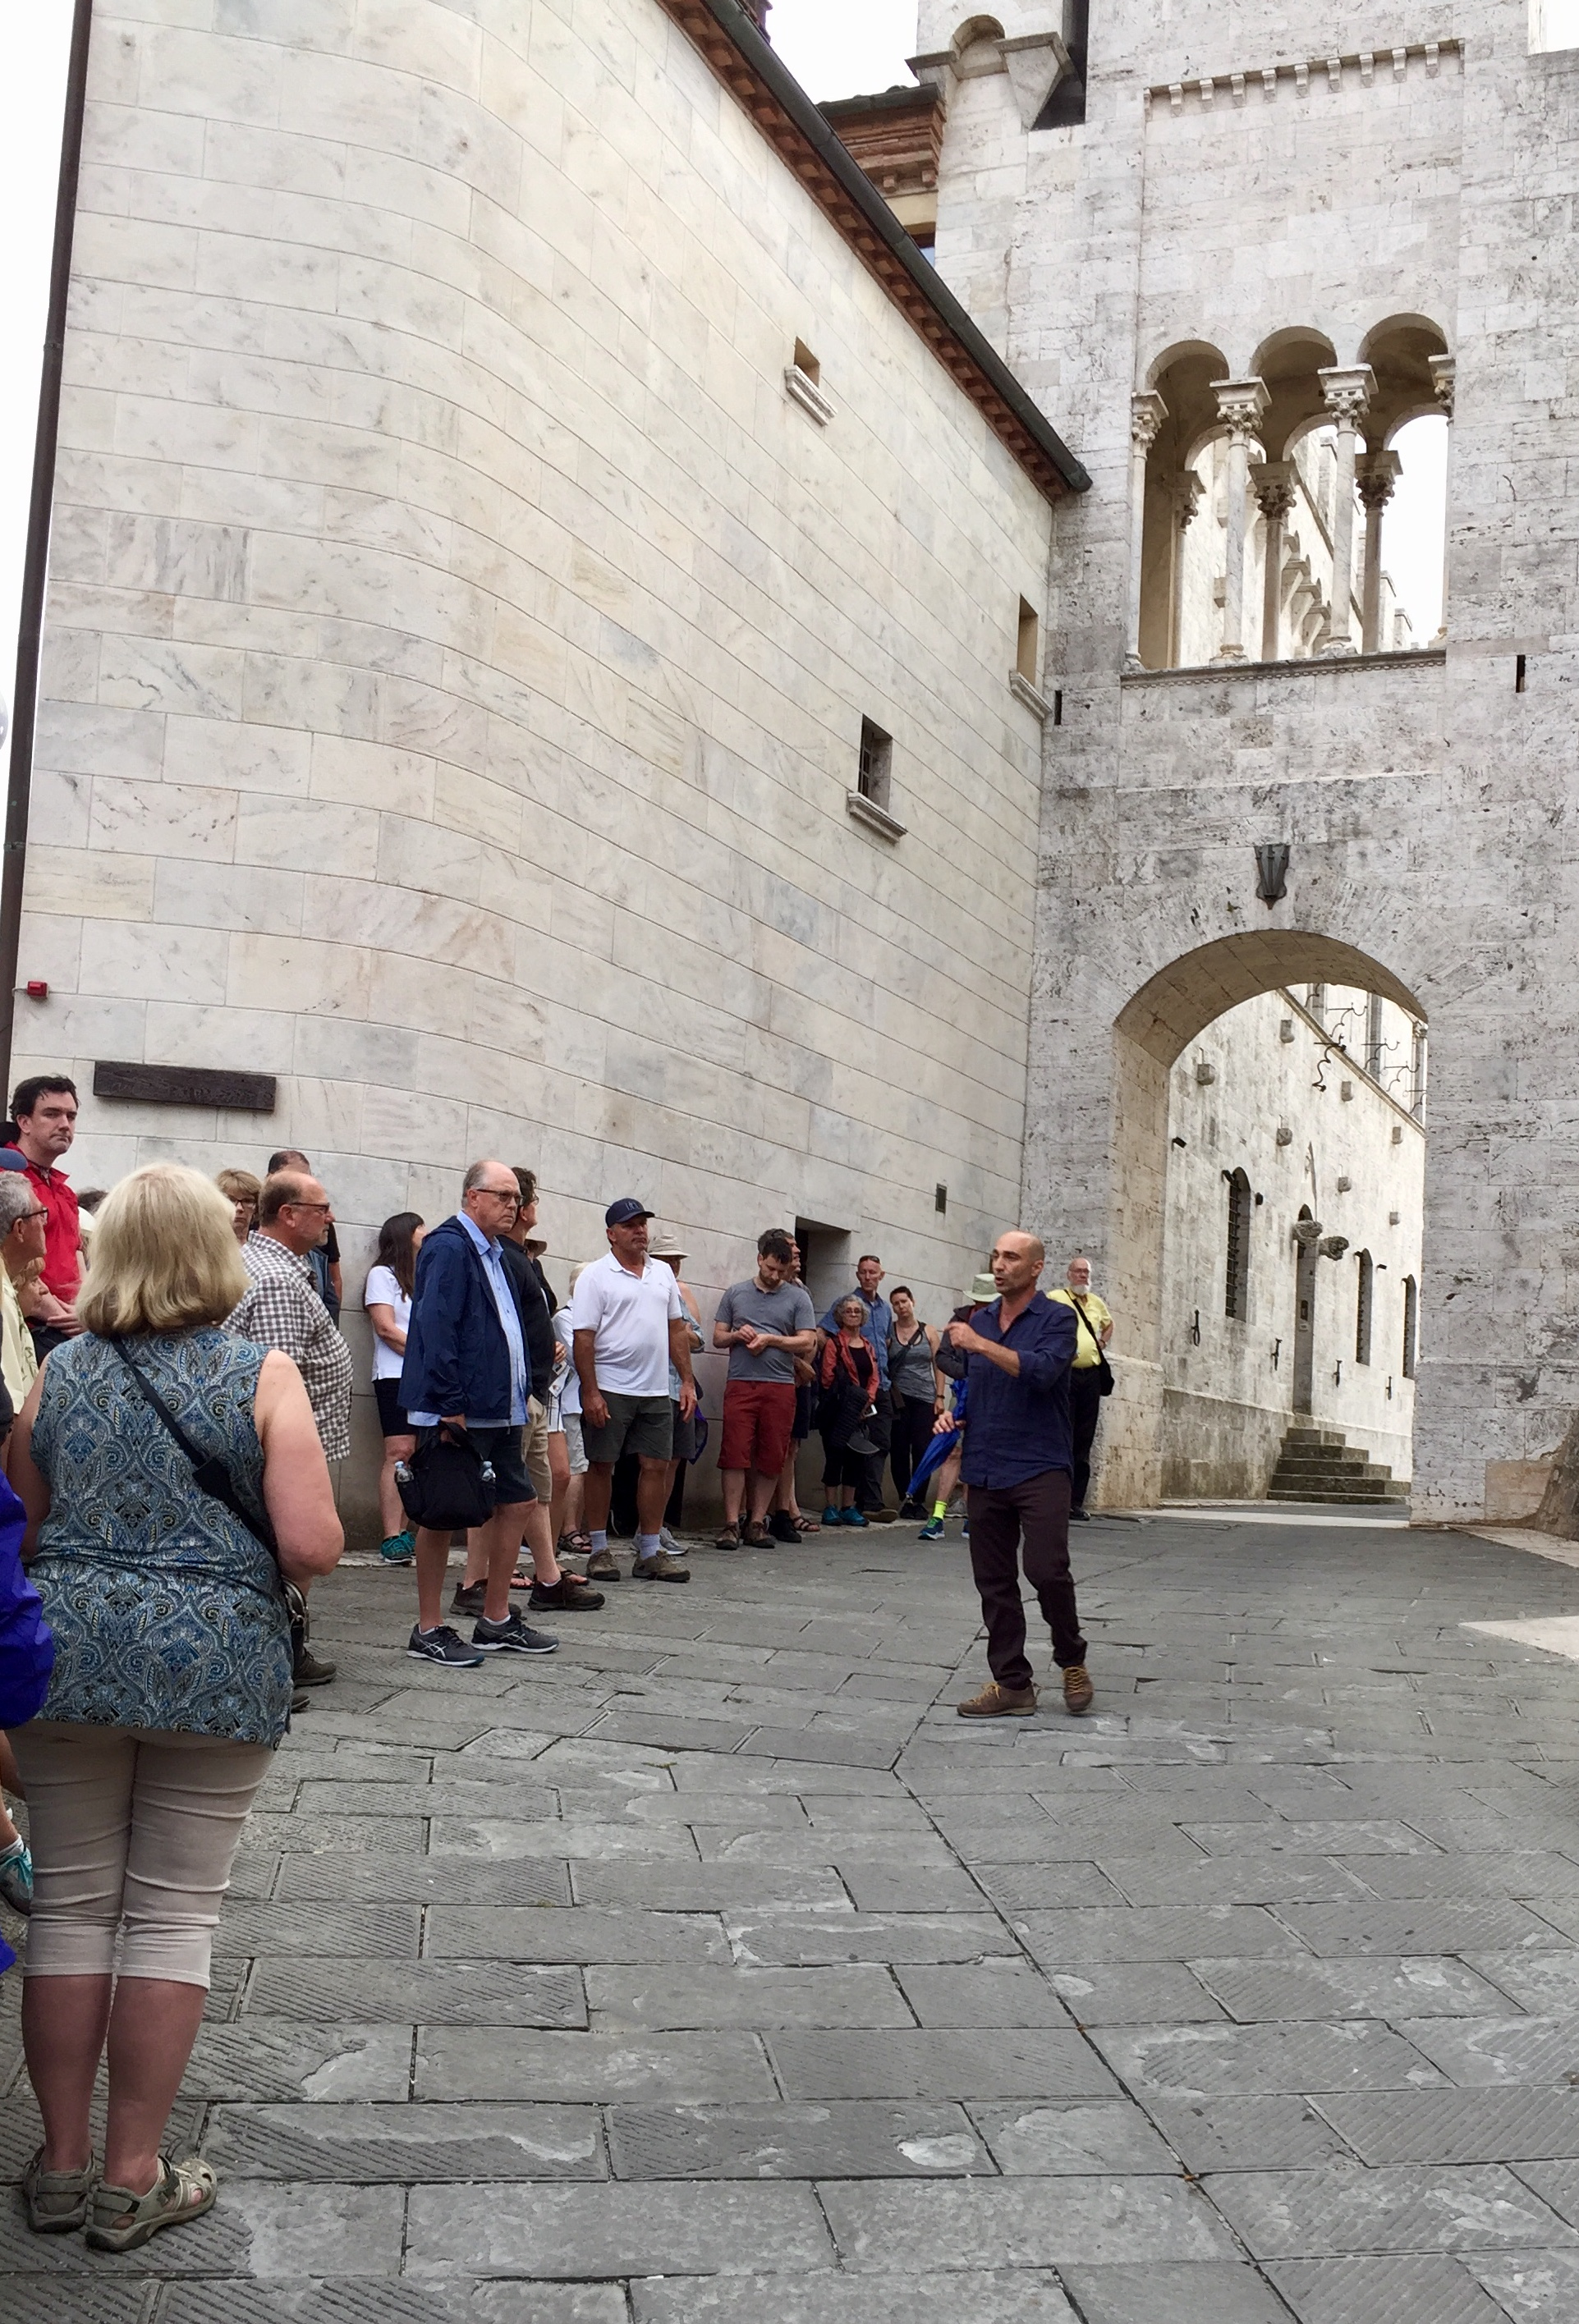 Antonio welcoming everyone at the entrance to Castello delle Serre, a 1,500 year old castle that he and his father restored.  We had dinner there after the castle tour.